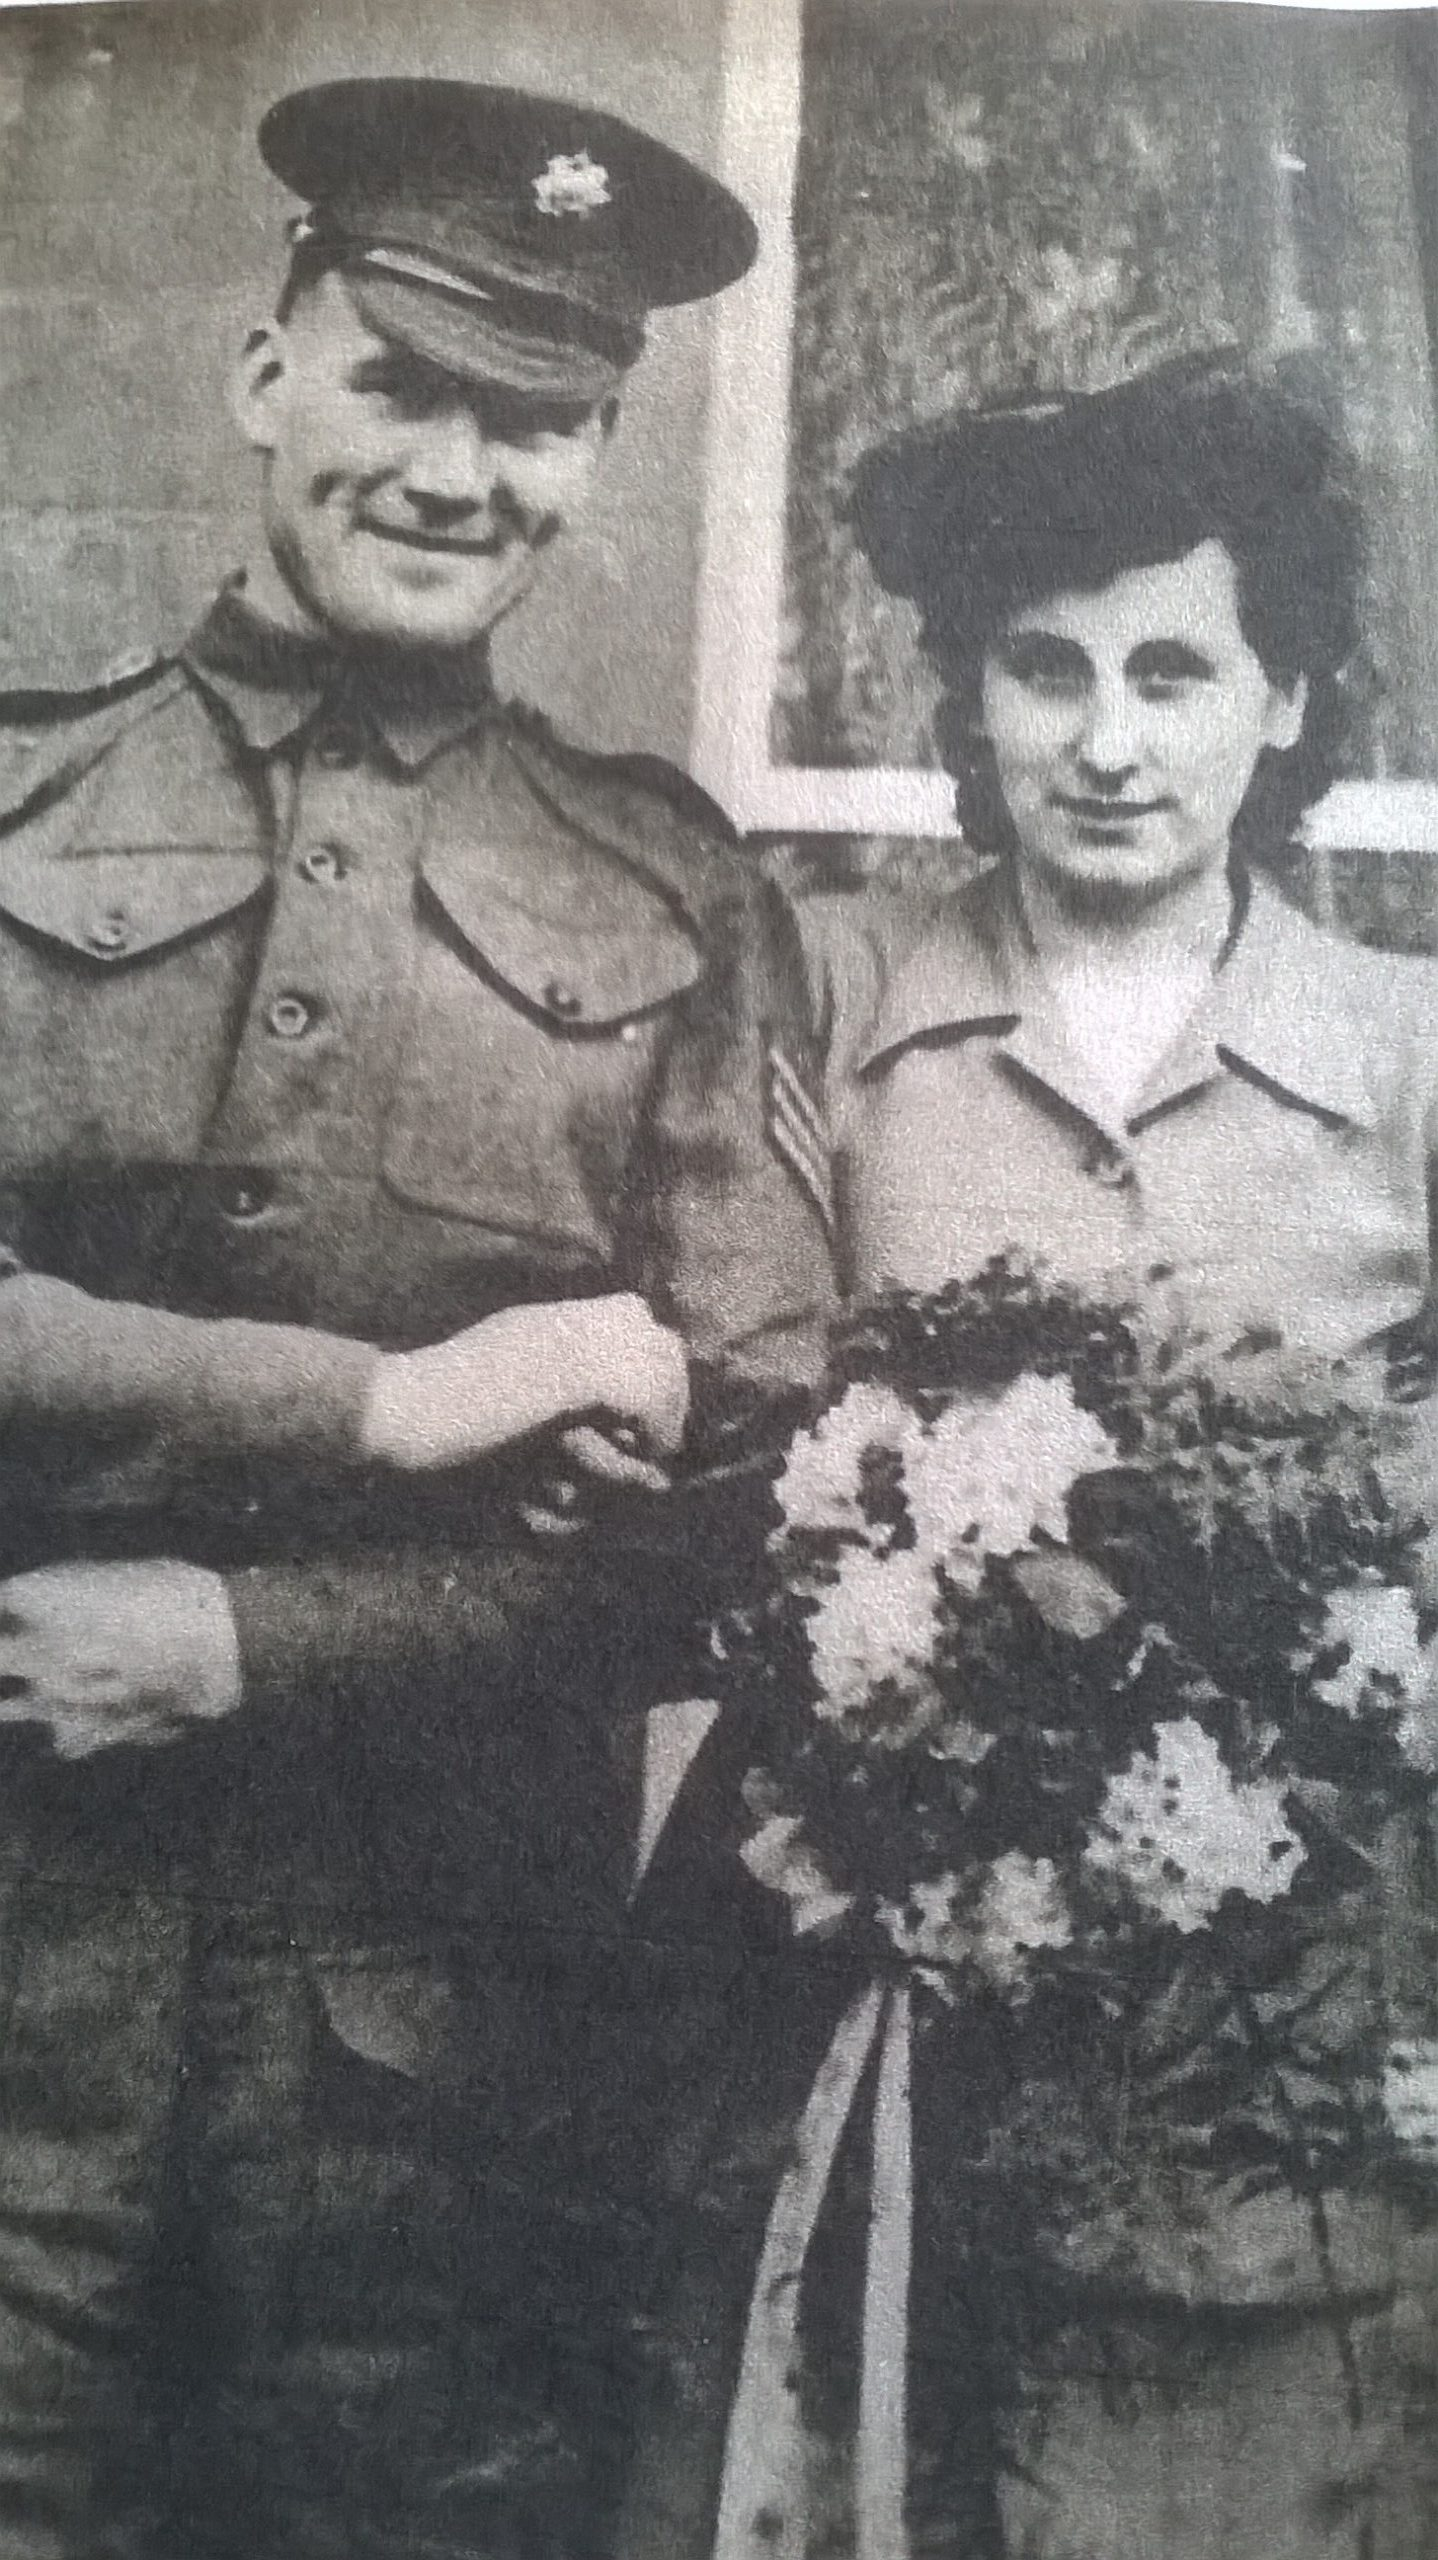 Andrew and Prue pictured on their wedding day. Andrew in uniform and Prue holding a bouquet of flowers.